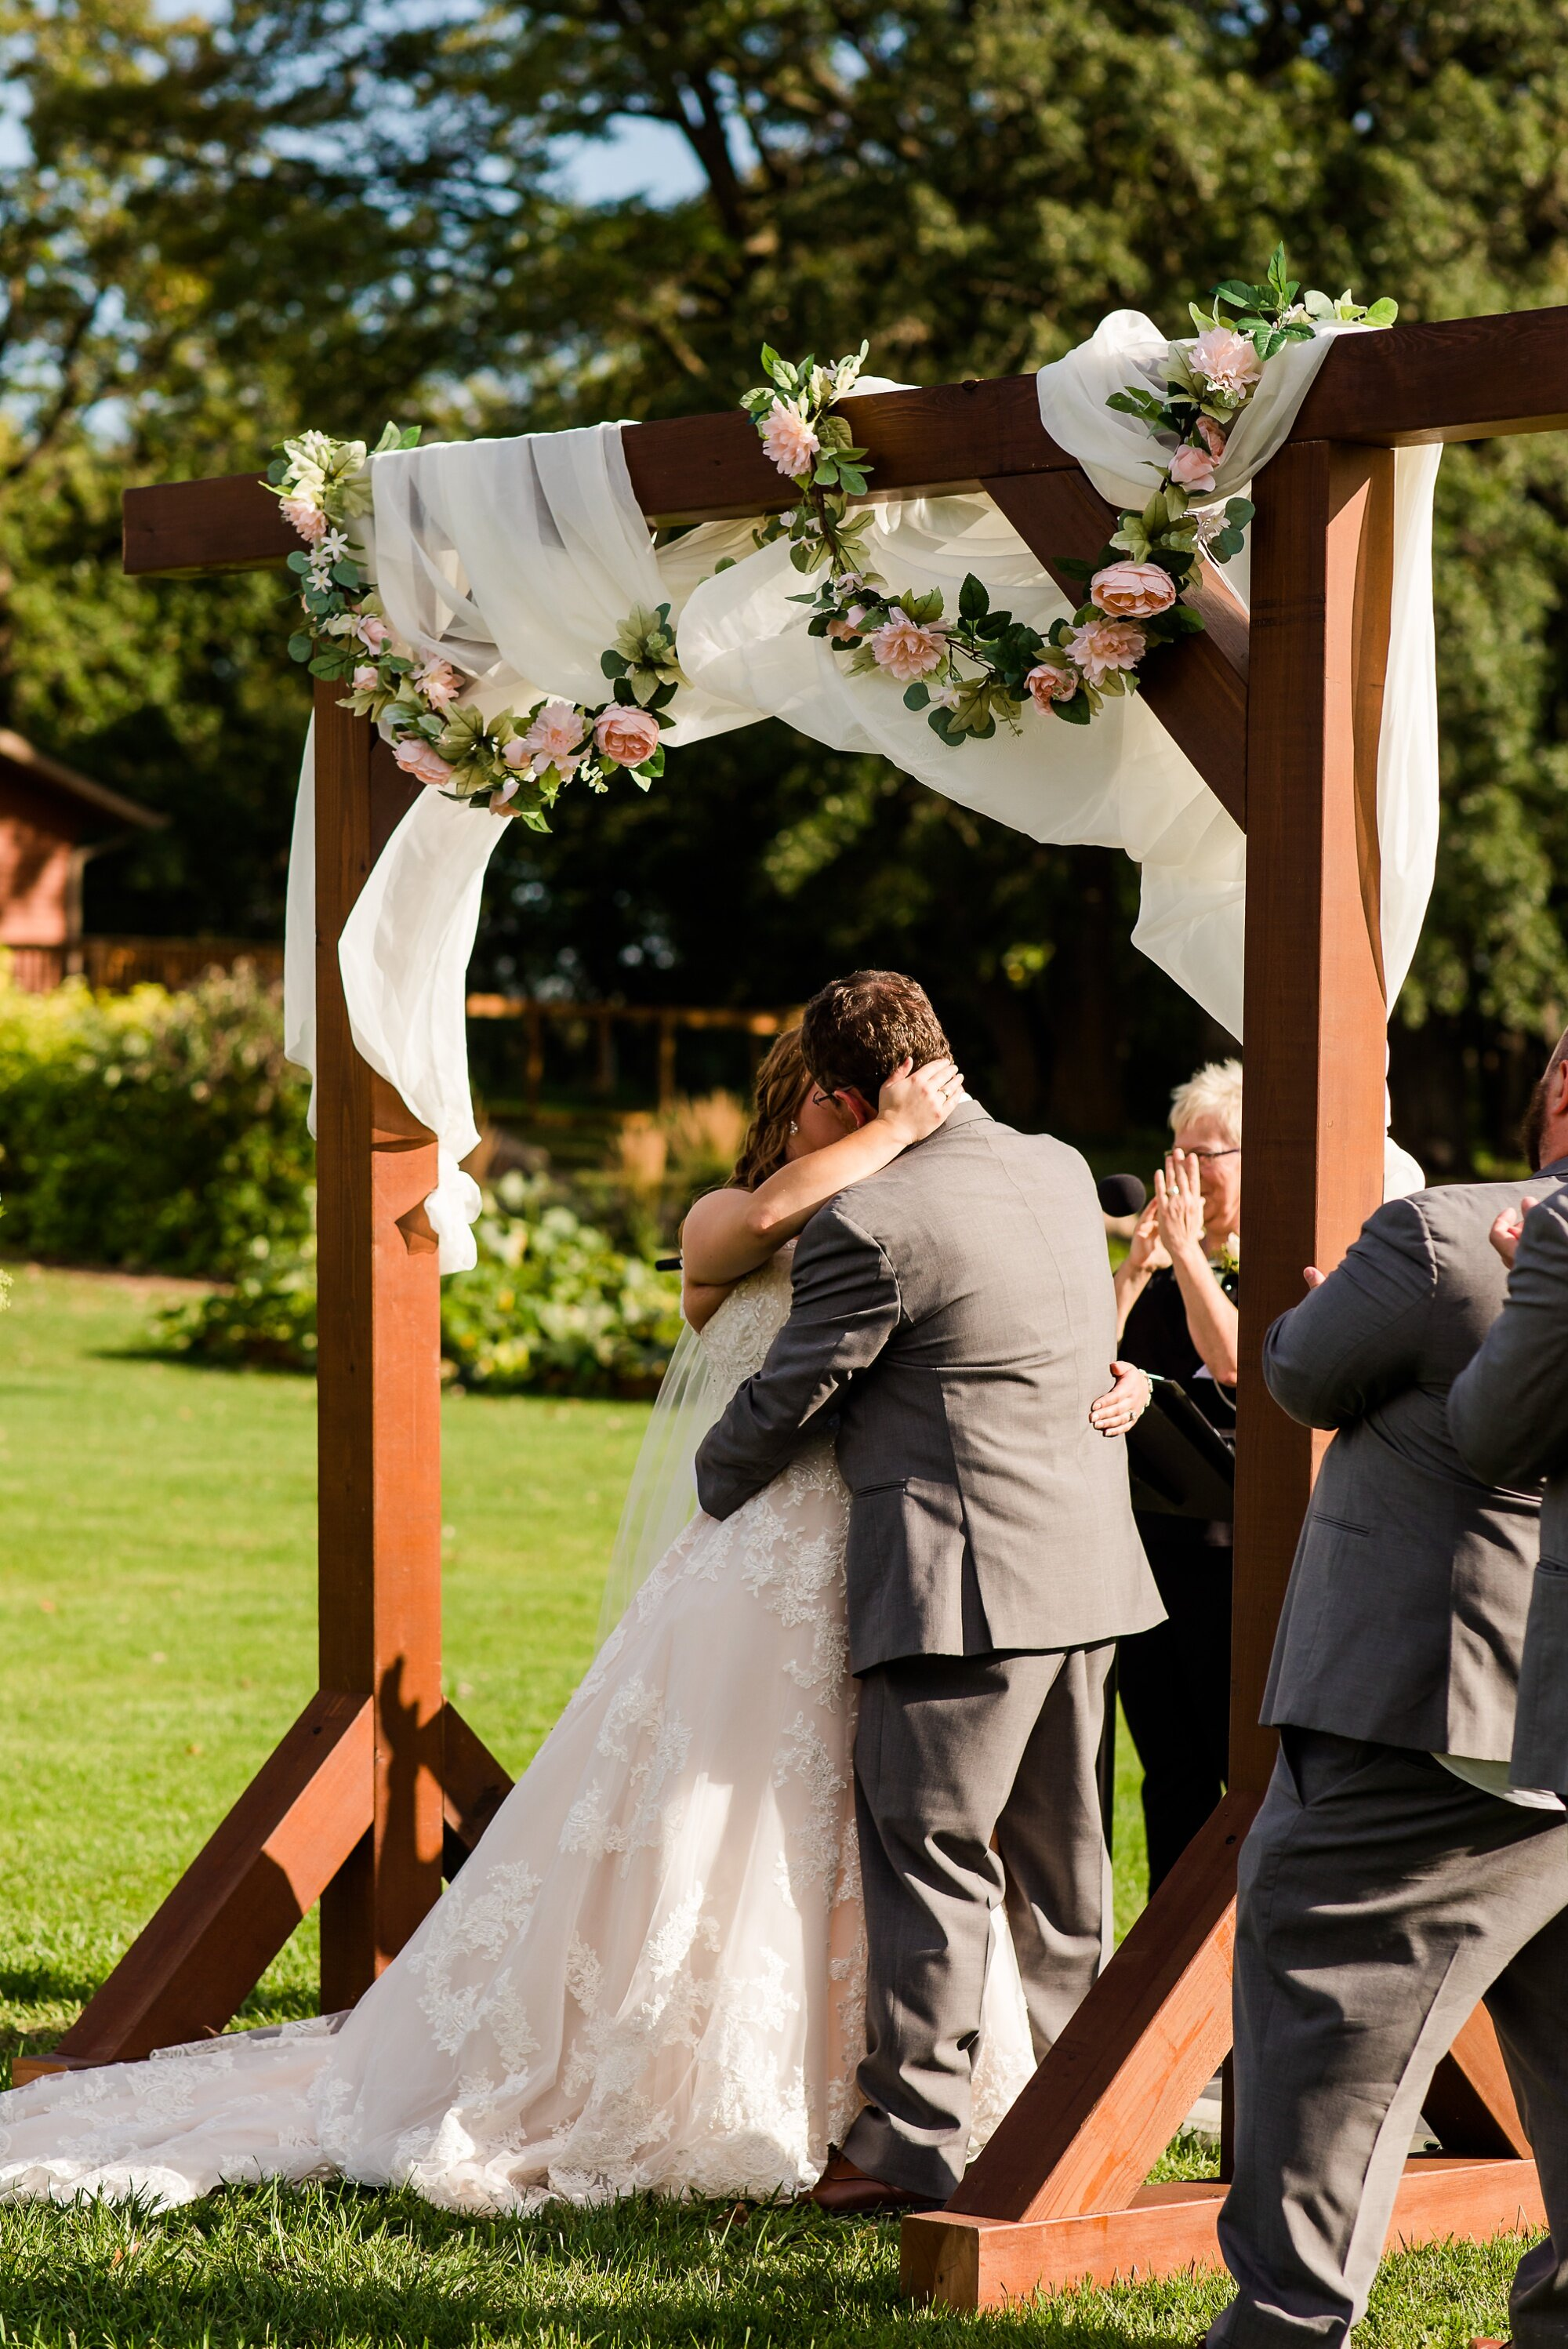 Amber Langerud Photography_Lake Park Minnesota, Outdoor Barn Wedding With Horses_6995.jpg